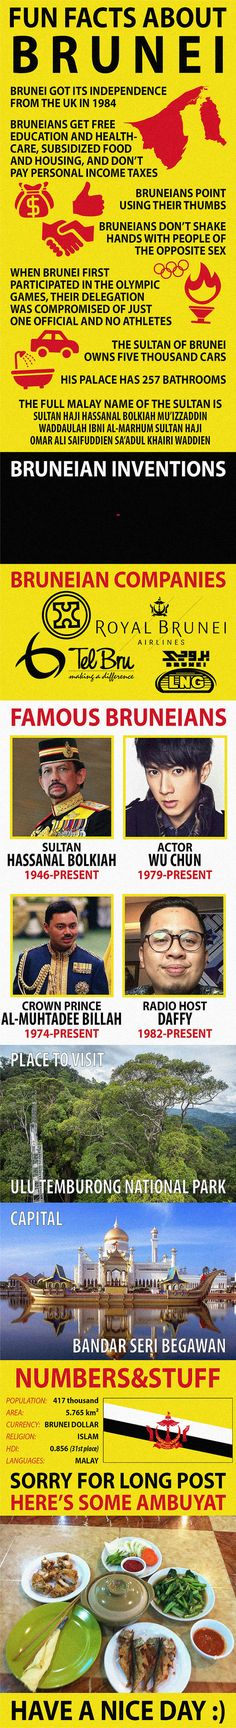 Fun Facts about Brunei